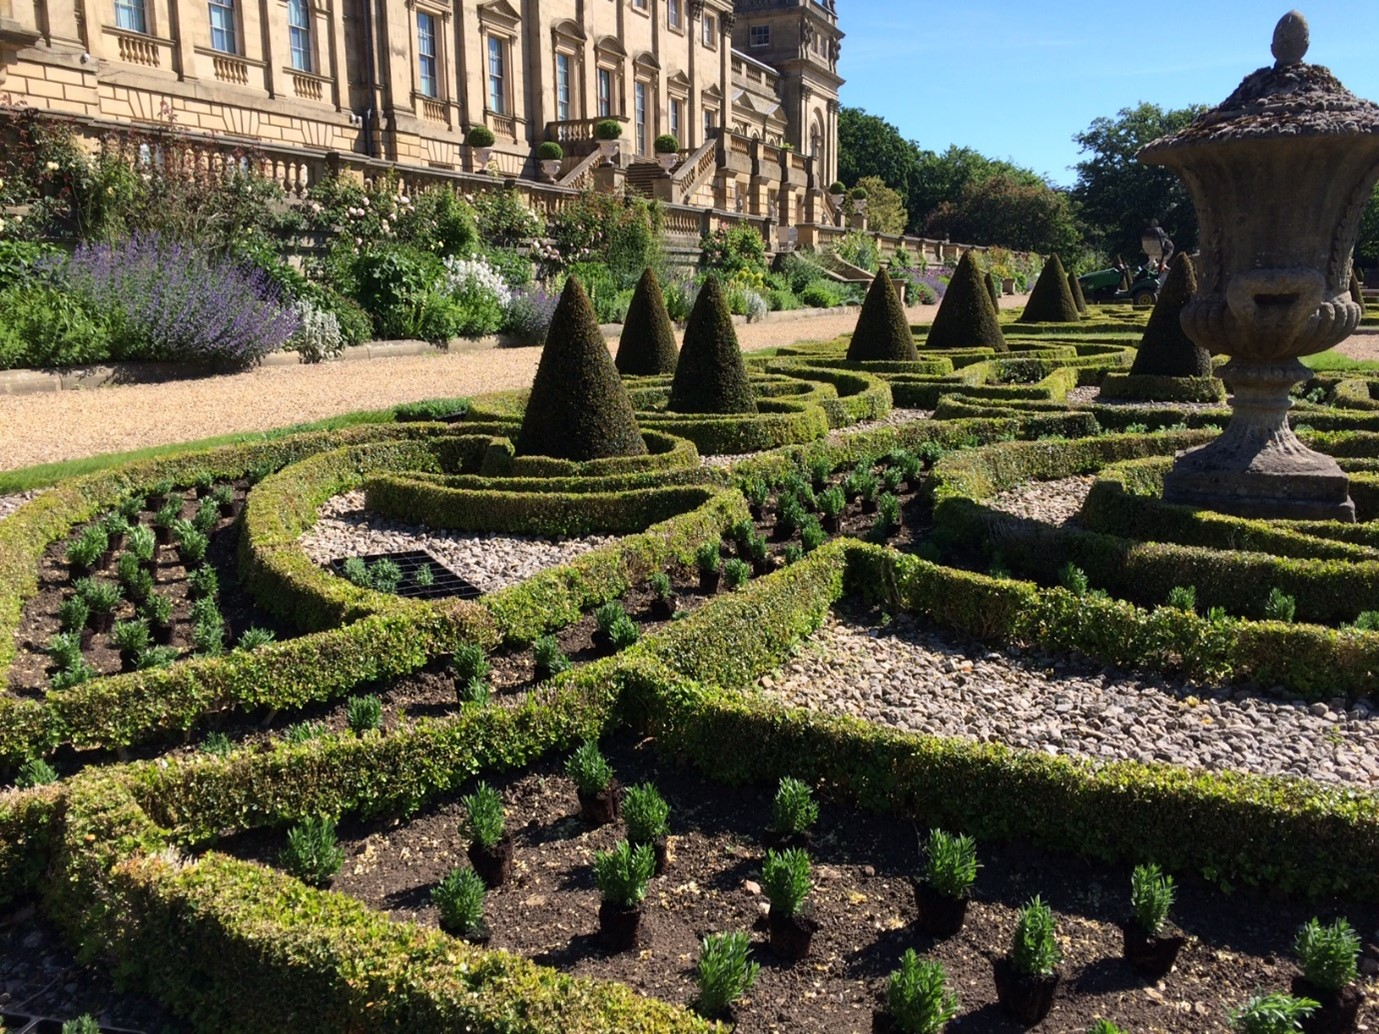 The Terrace at Harewood - hedges and planted lavender